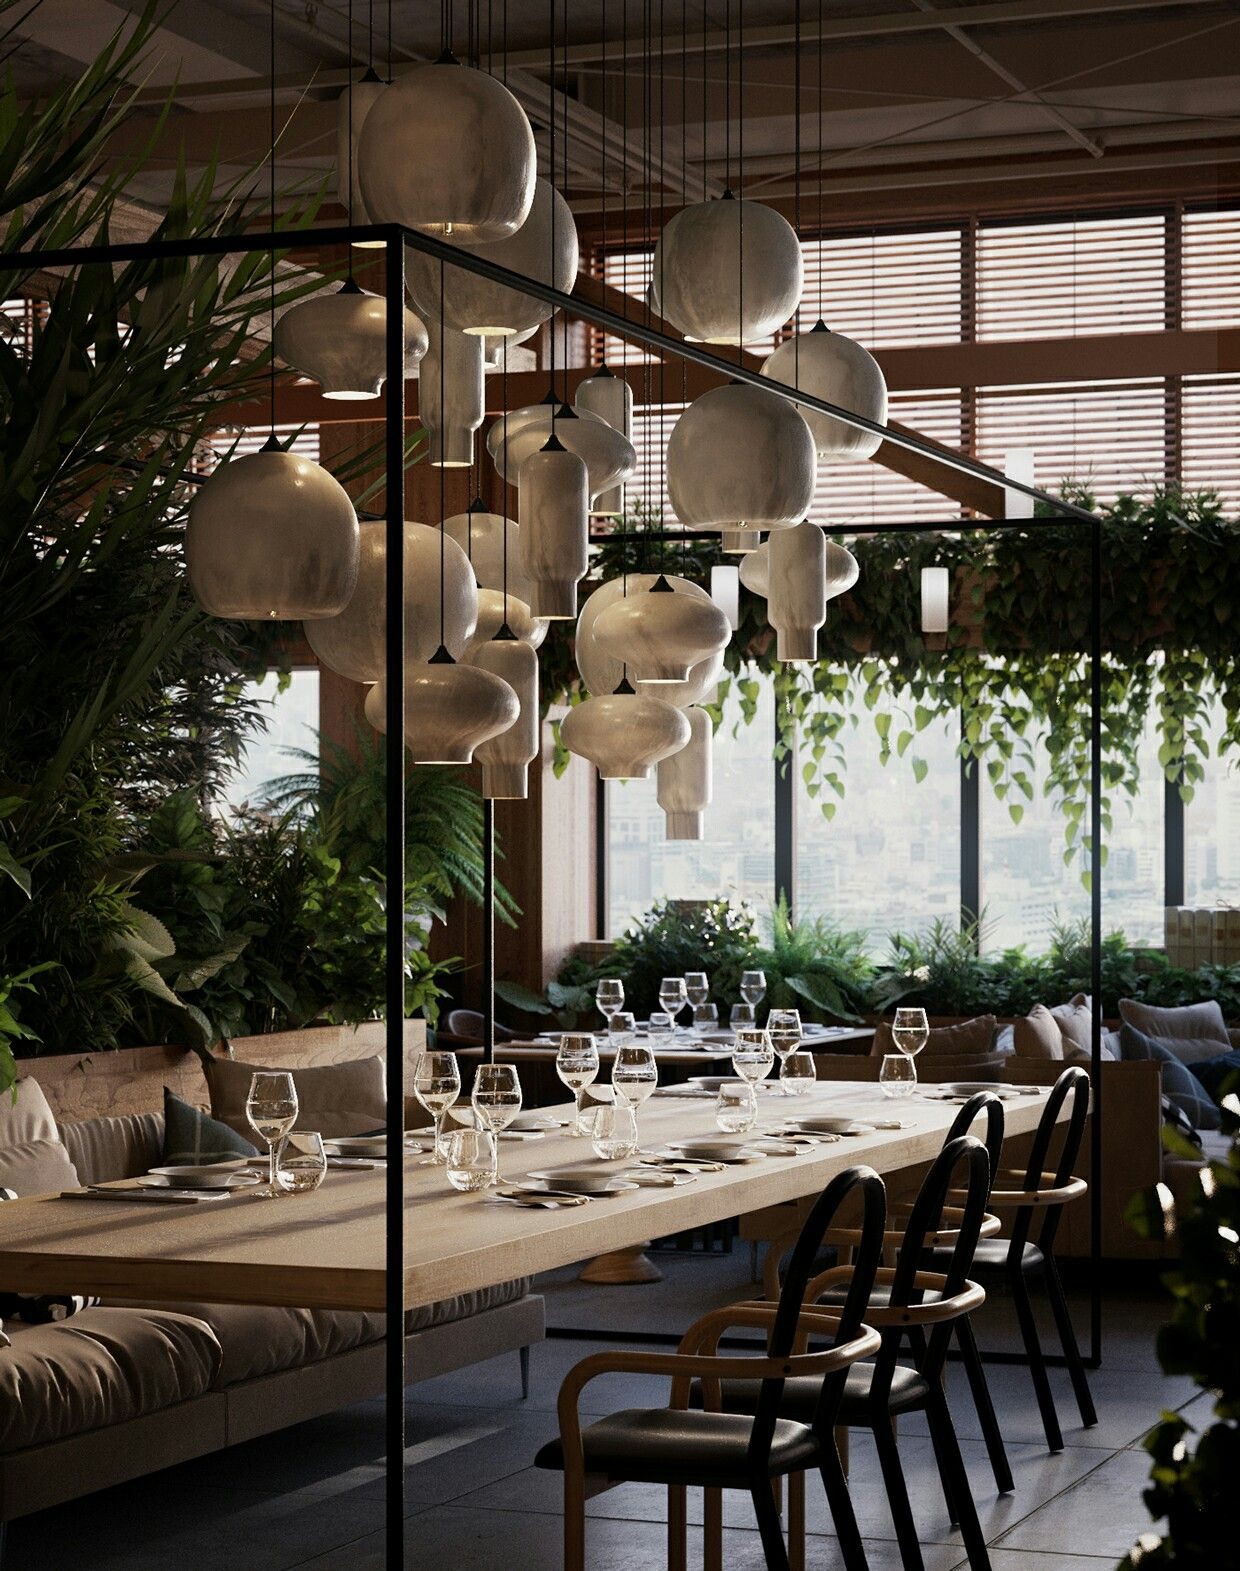 Pin by Tina King on Ideas for the House   Pinterest   Restaurants ...